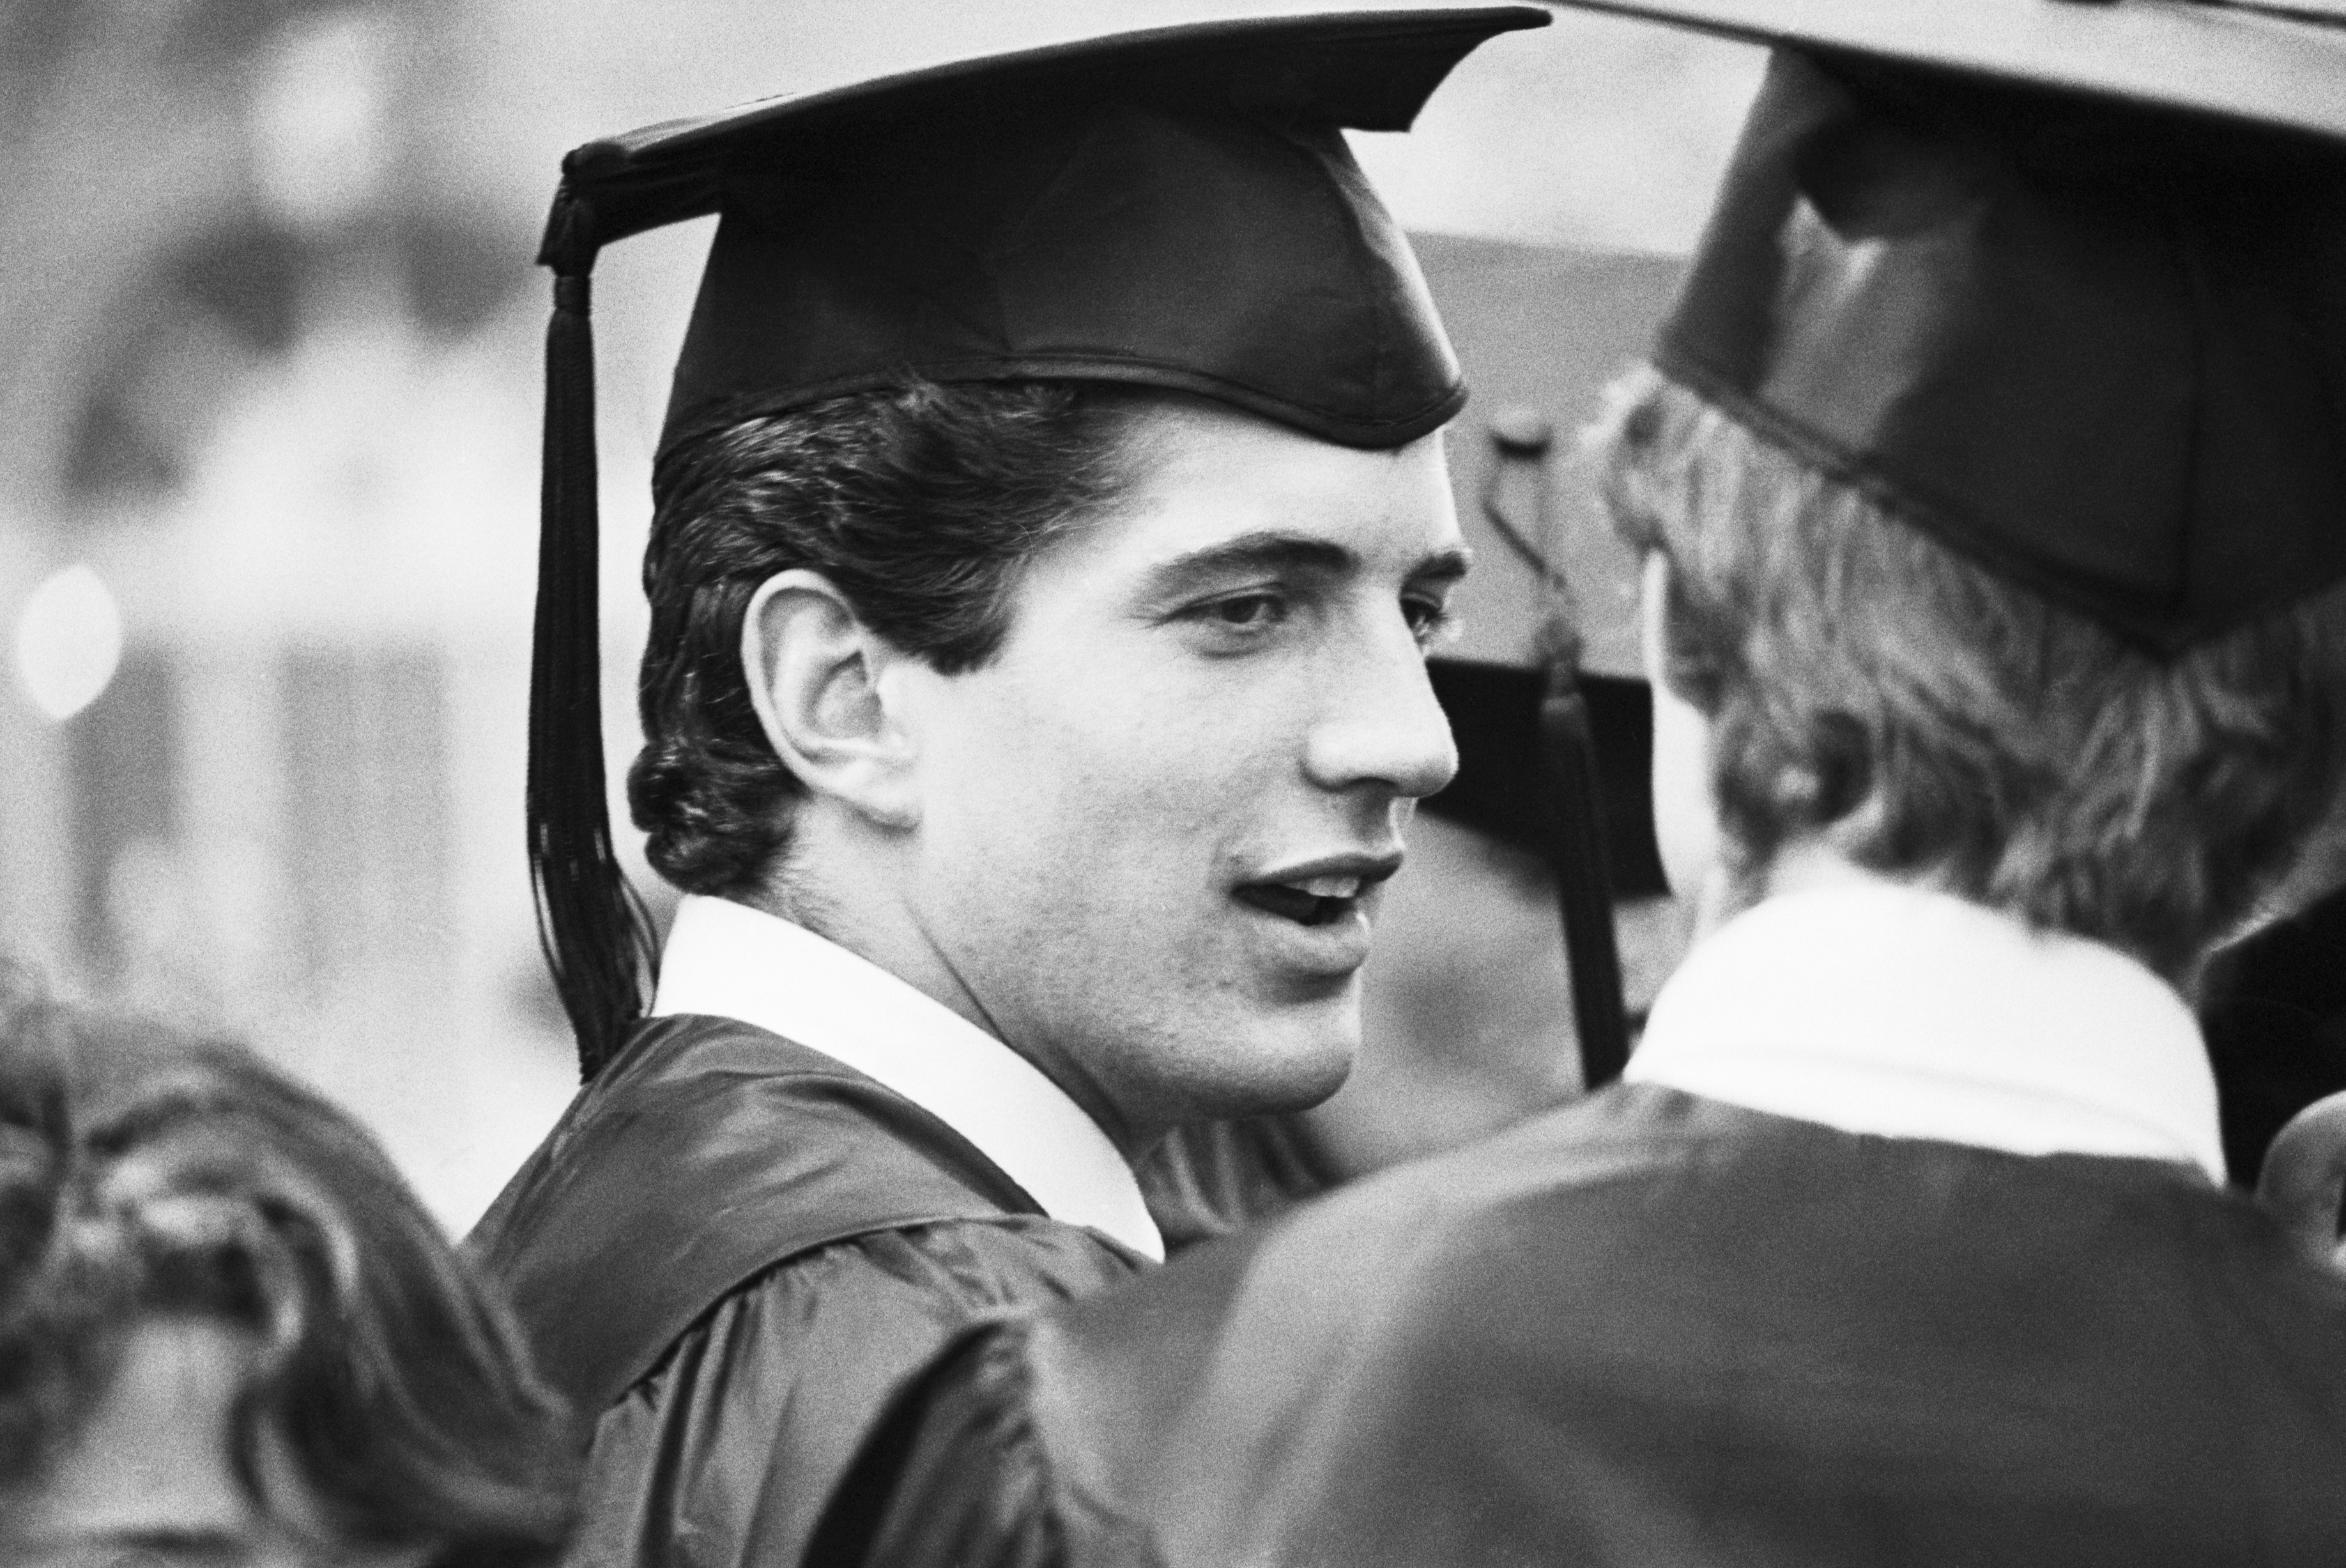 John F. Kennedy Jr. at Graduation